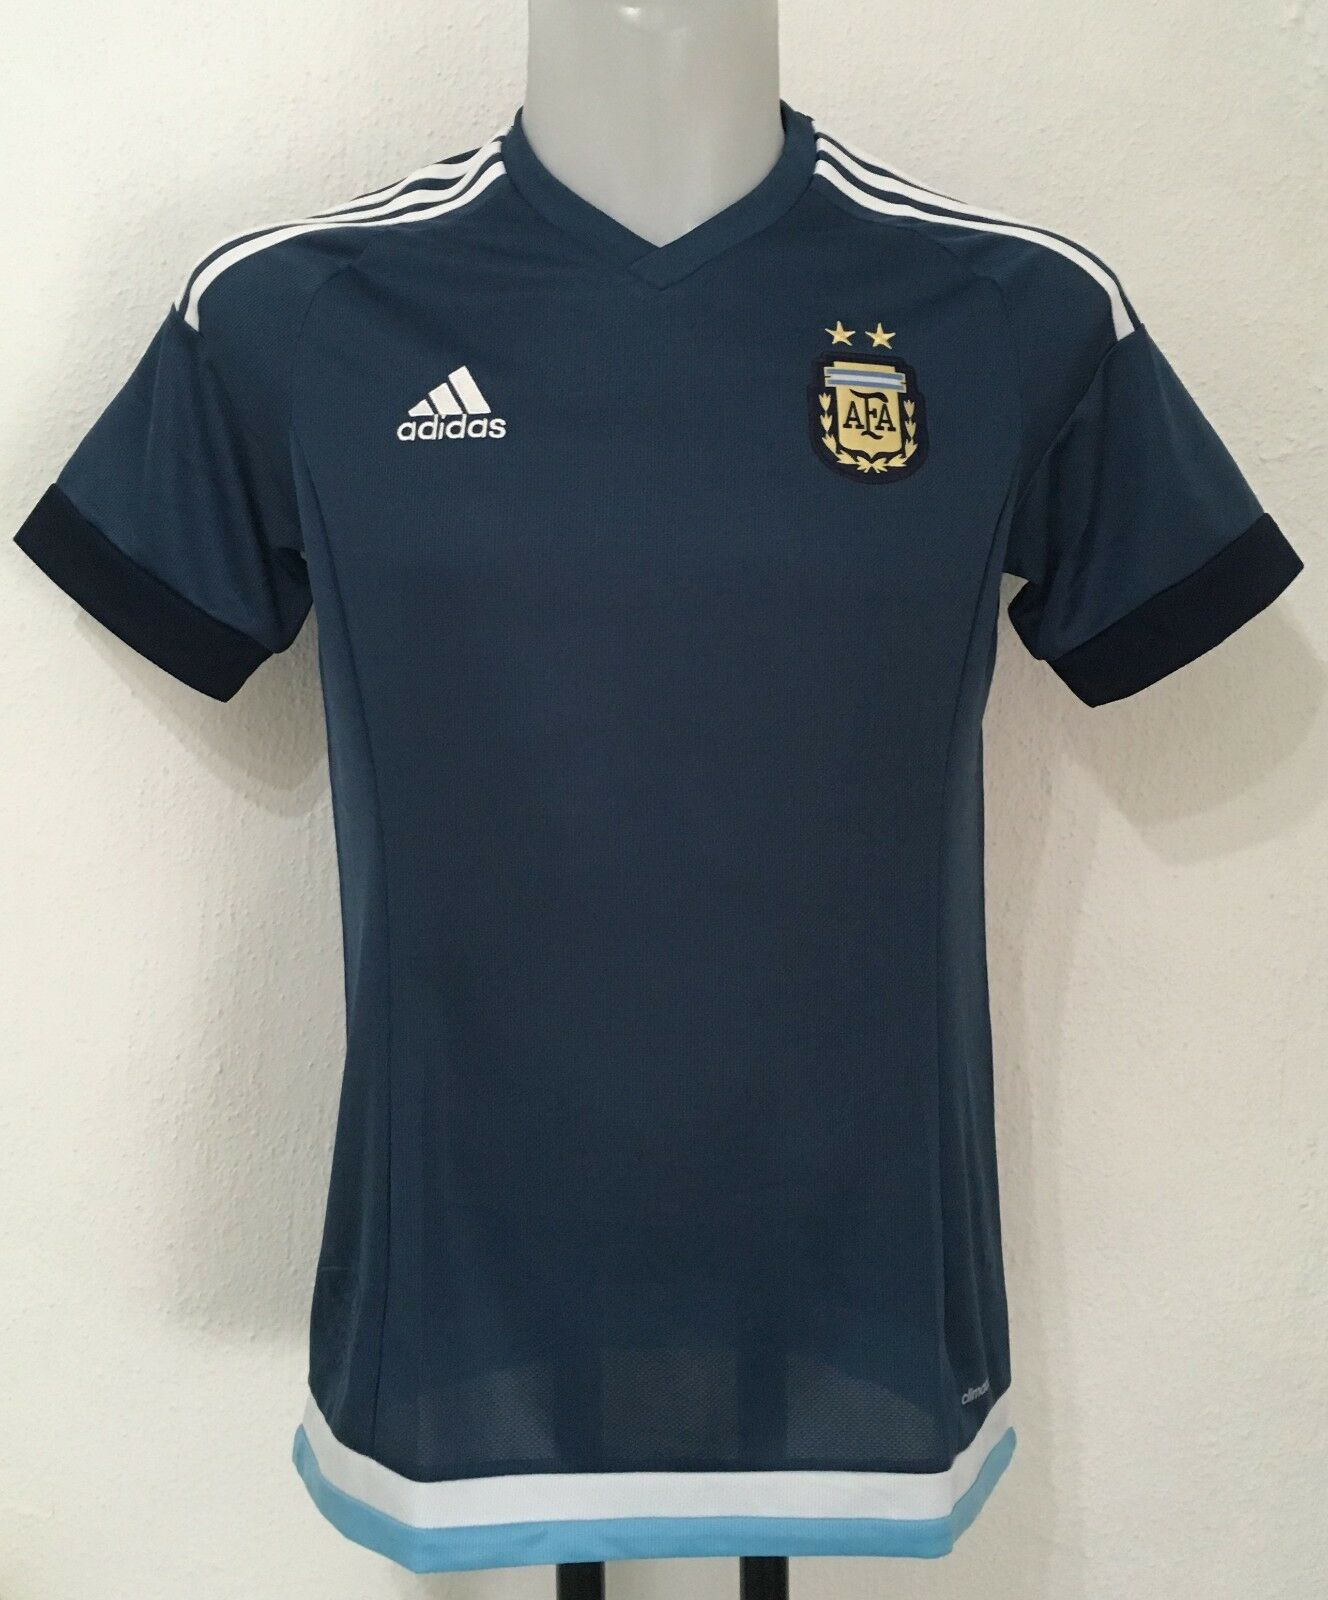 silverINA 2015 17 S S AWAY SHIRT BY ADIDAS SIZE MEN'S MEDIUM BRAND NEW WITH TAGS